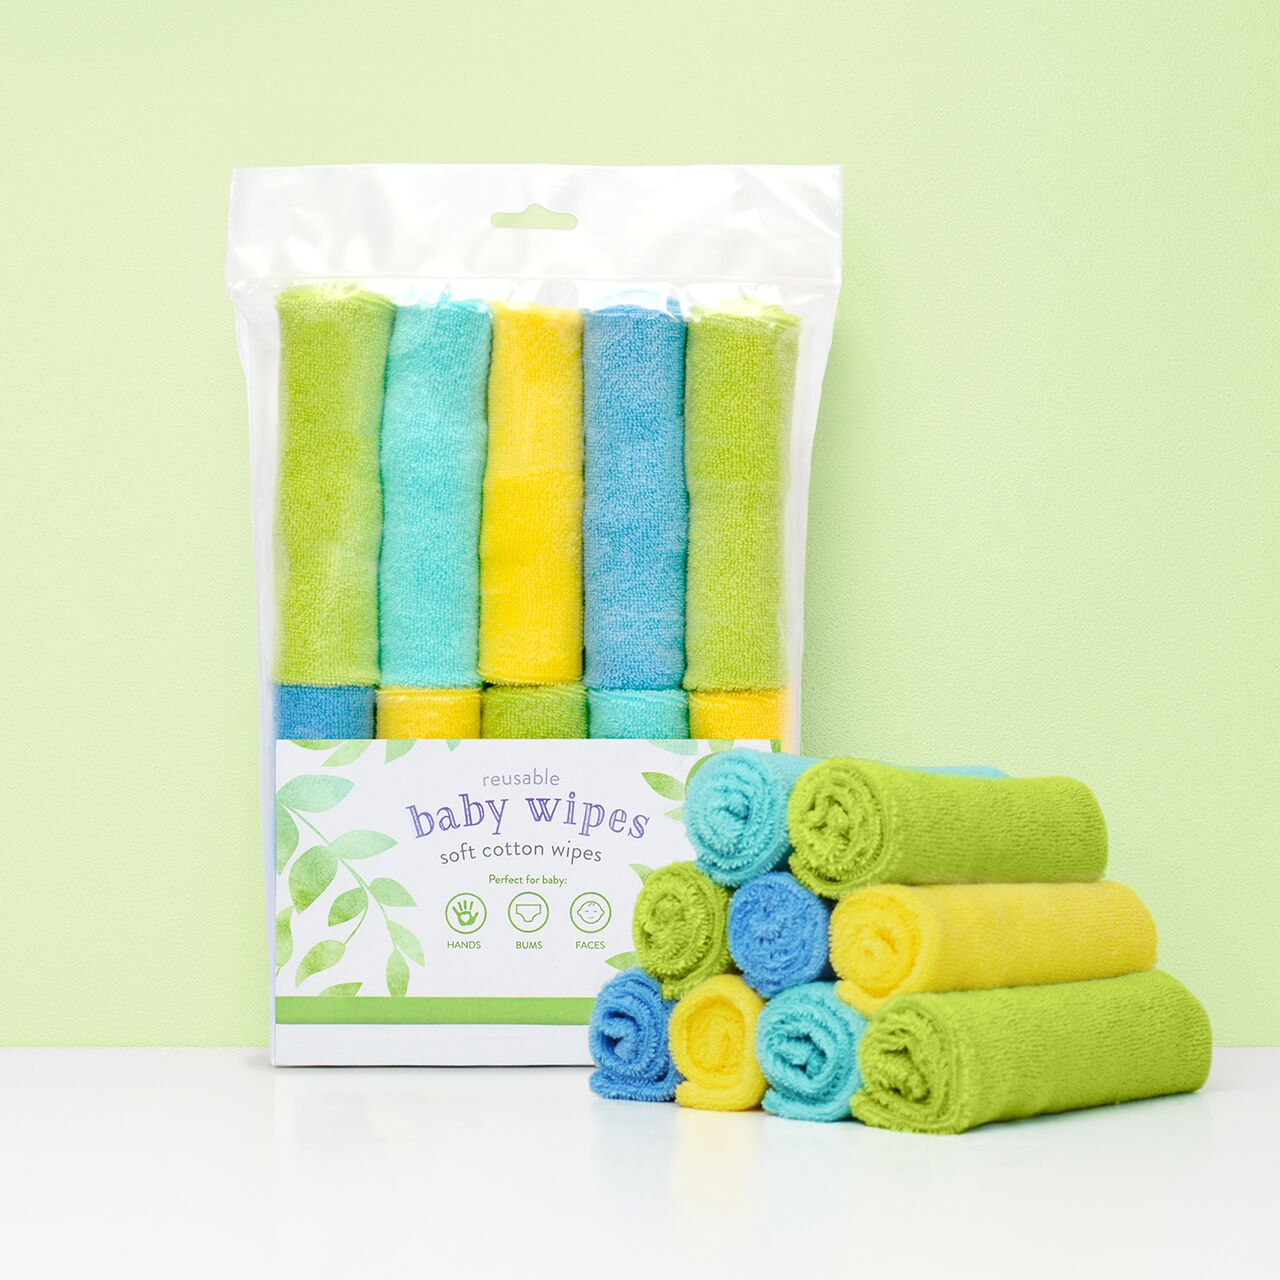 Bambino Mio Reusable Wipes - Lime